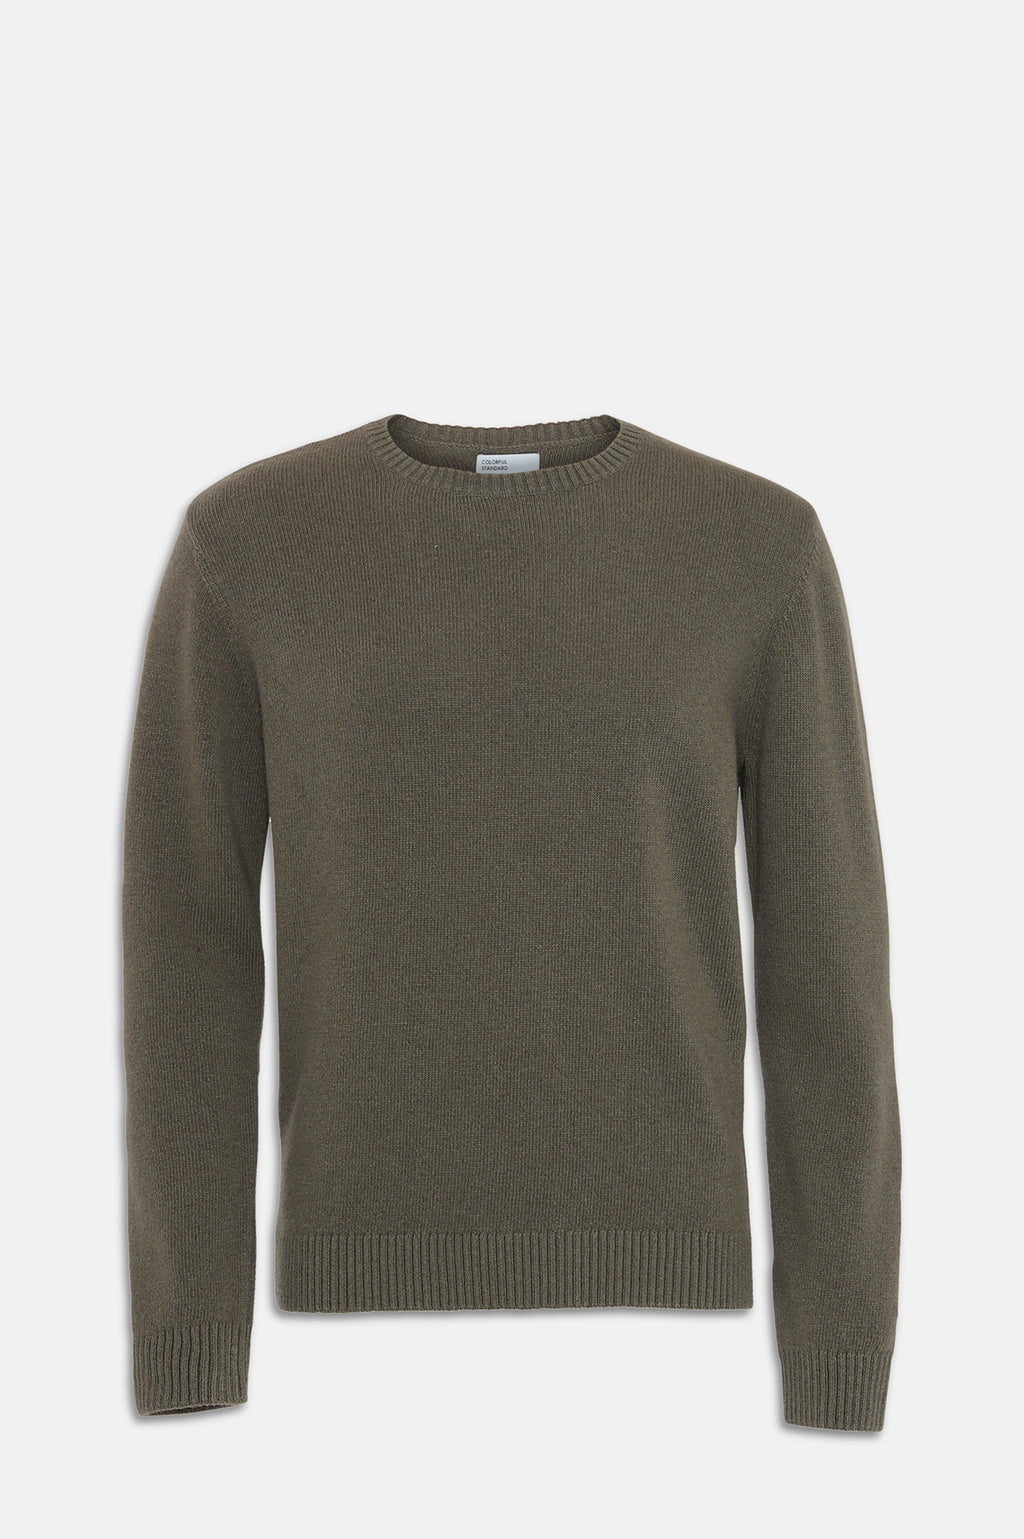 ReMade Wool Crew Jumper in Dusty Olive